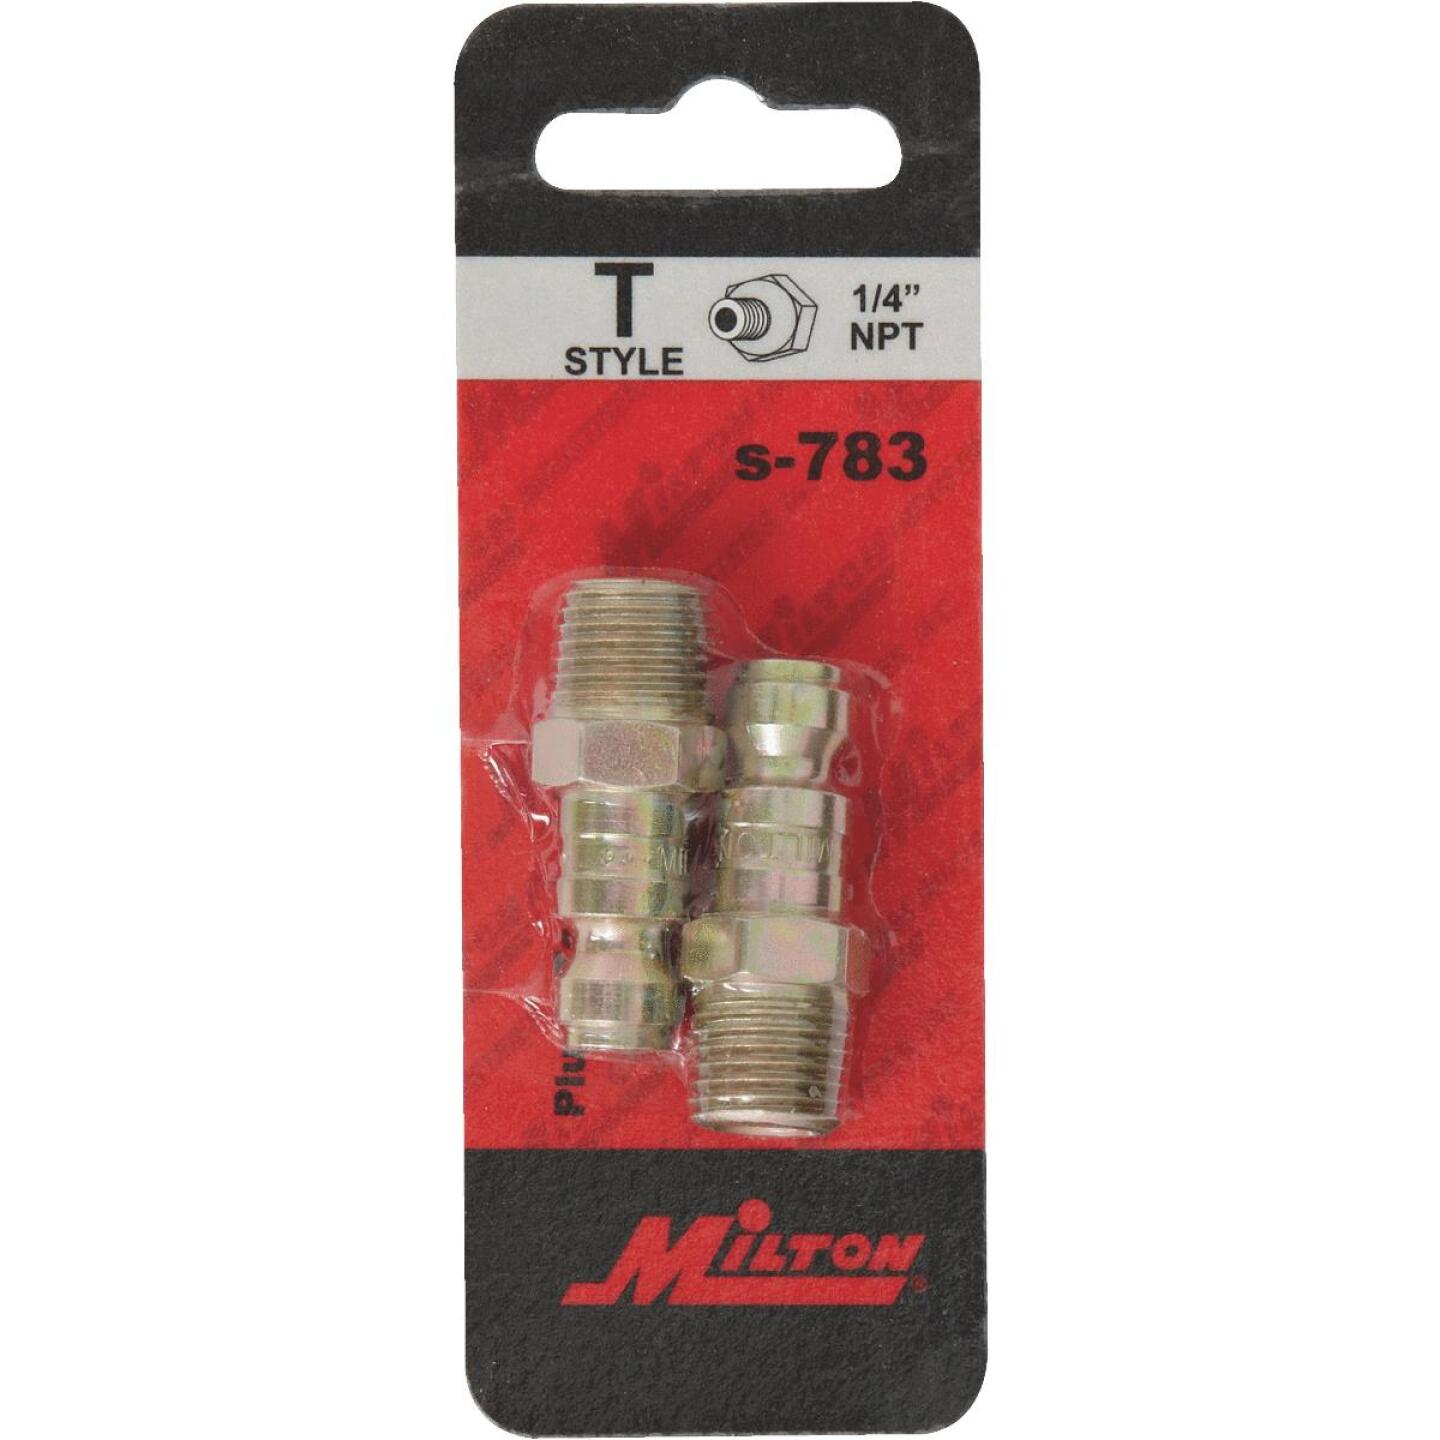 Milton 1/4 In. FMPT Steel-Plated T-Style Plug Image 2